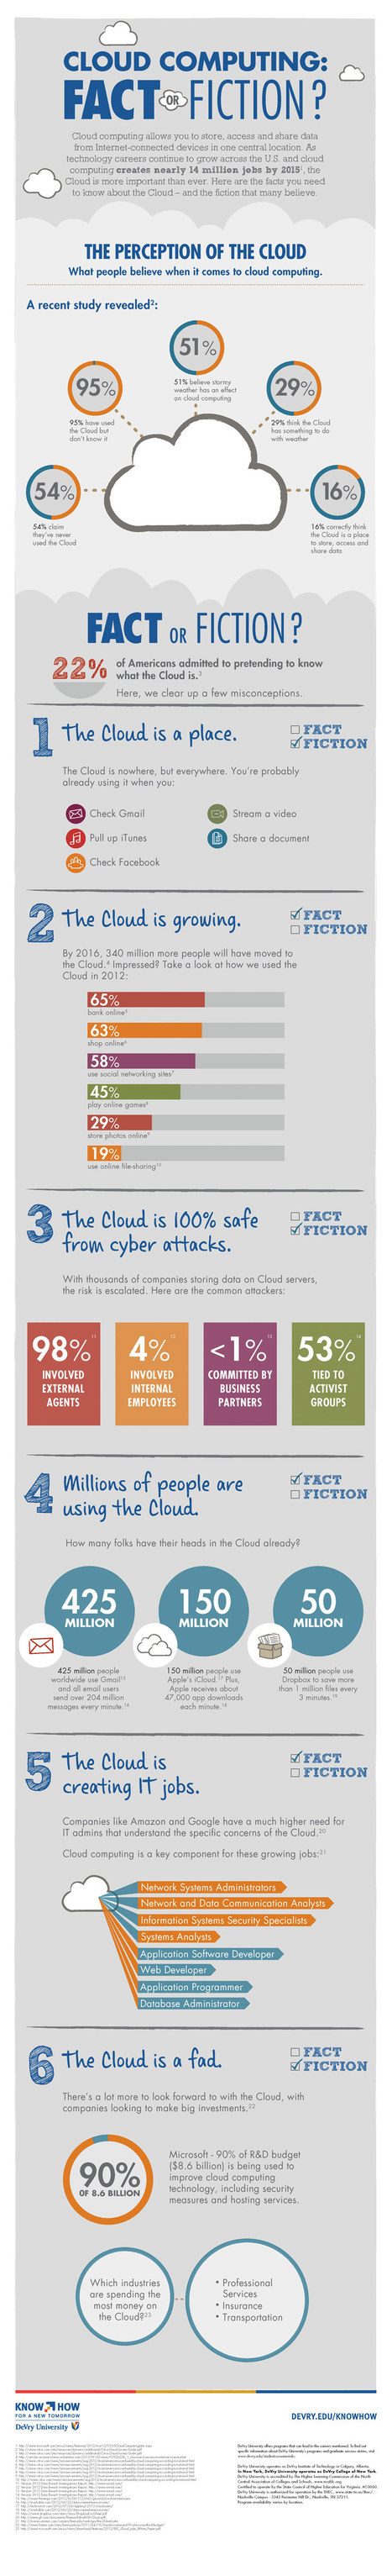 Is Cloud Computing a Fact or Fiction? – infographic | Nuava Operational Solutions | Scoop.it